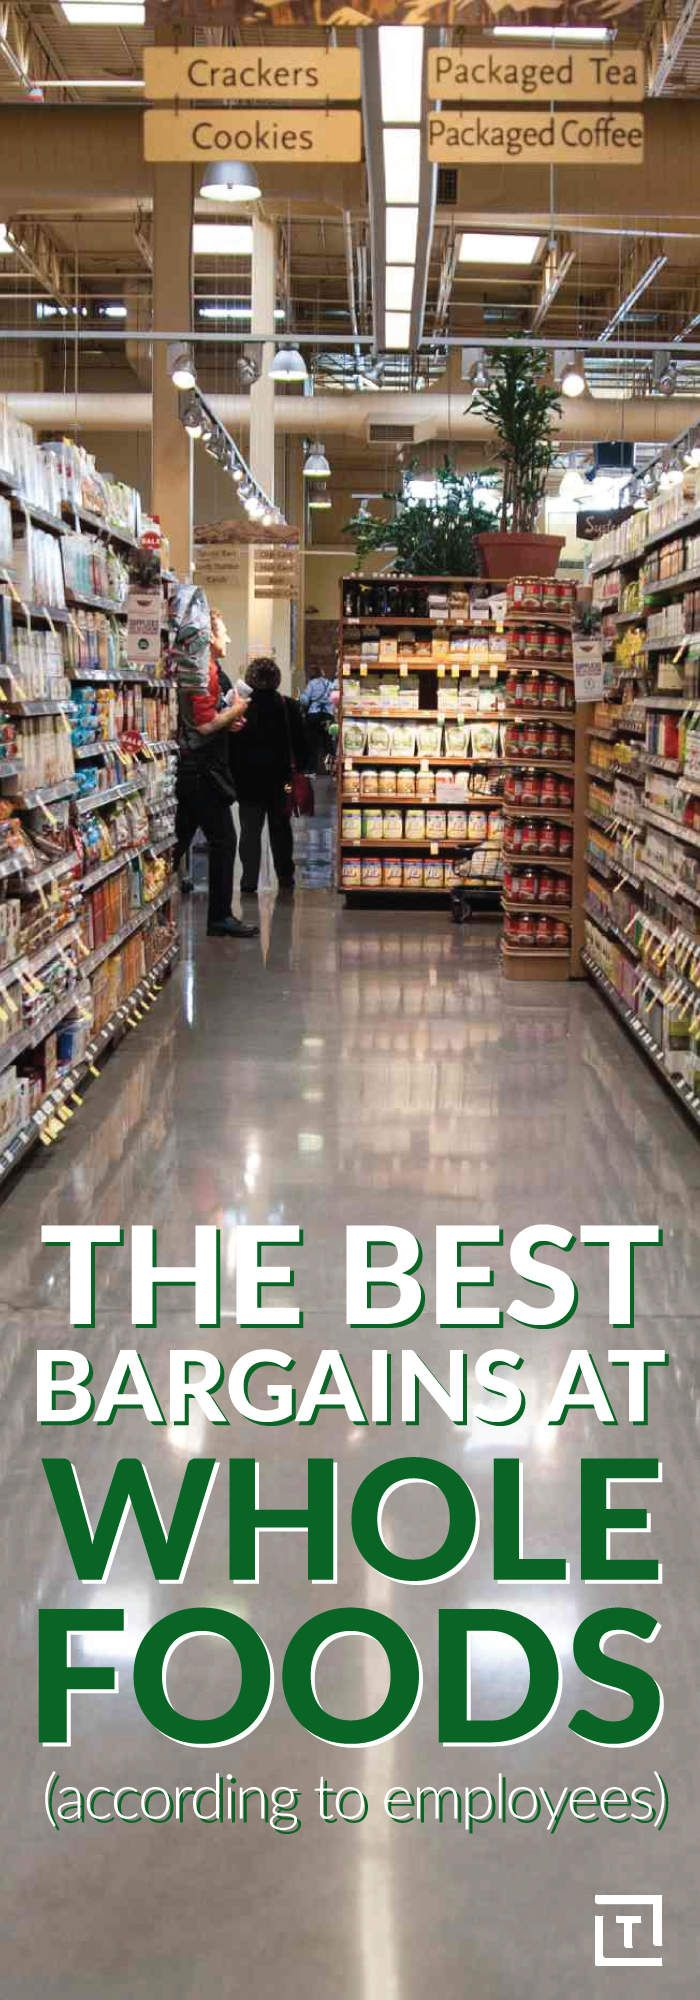 The Best Bargains at Whole Foods, According to Employees